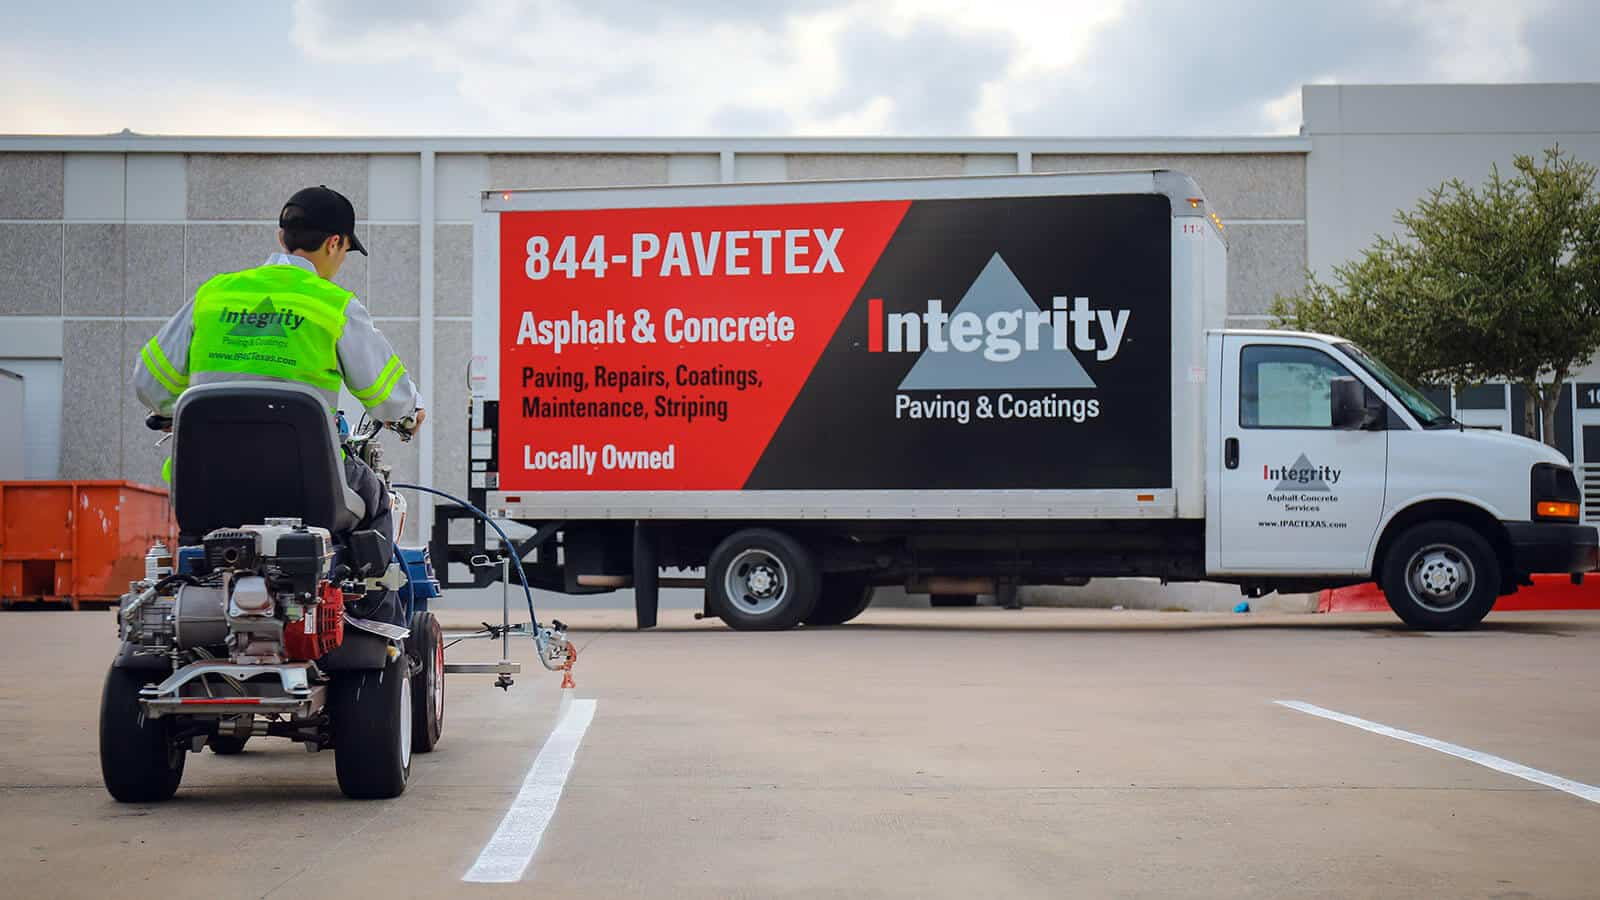 Integrity Paving Website Designed By Kulture Digital In Austin, TX